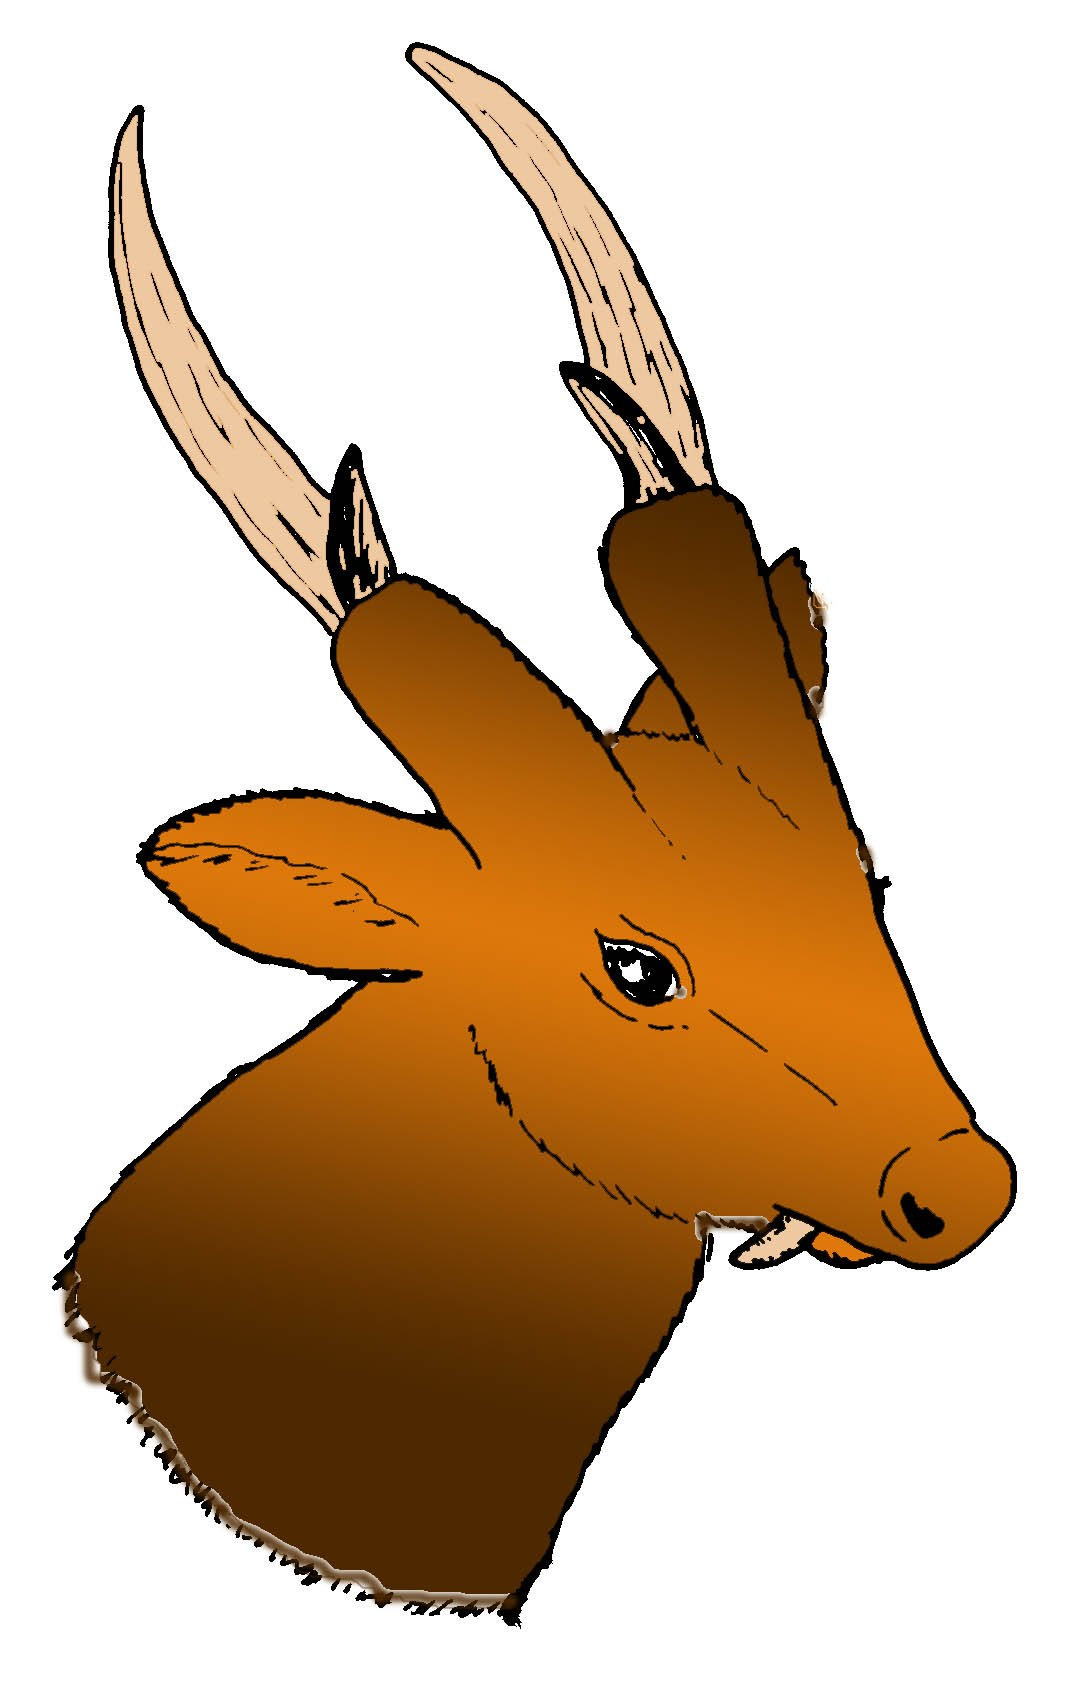 Artist's rendering of a giant Muntjac